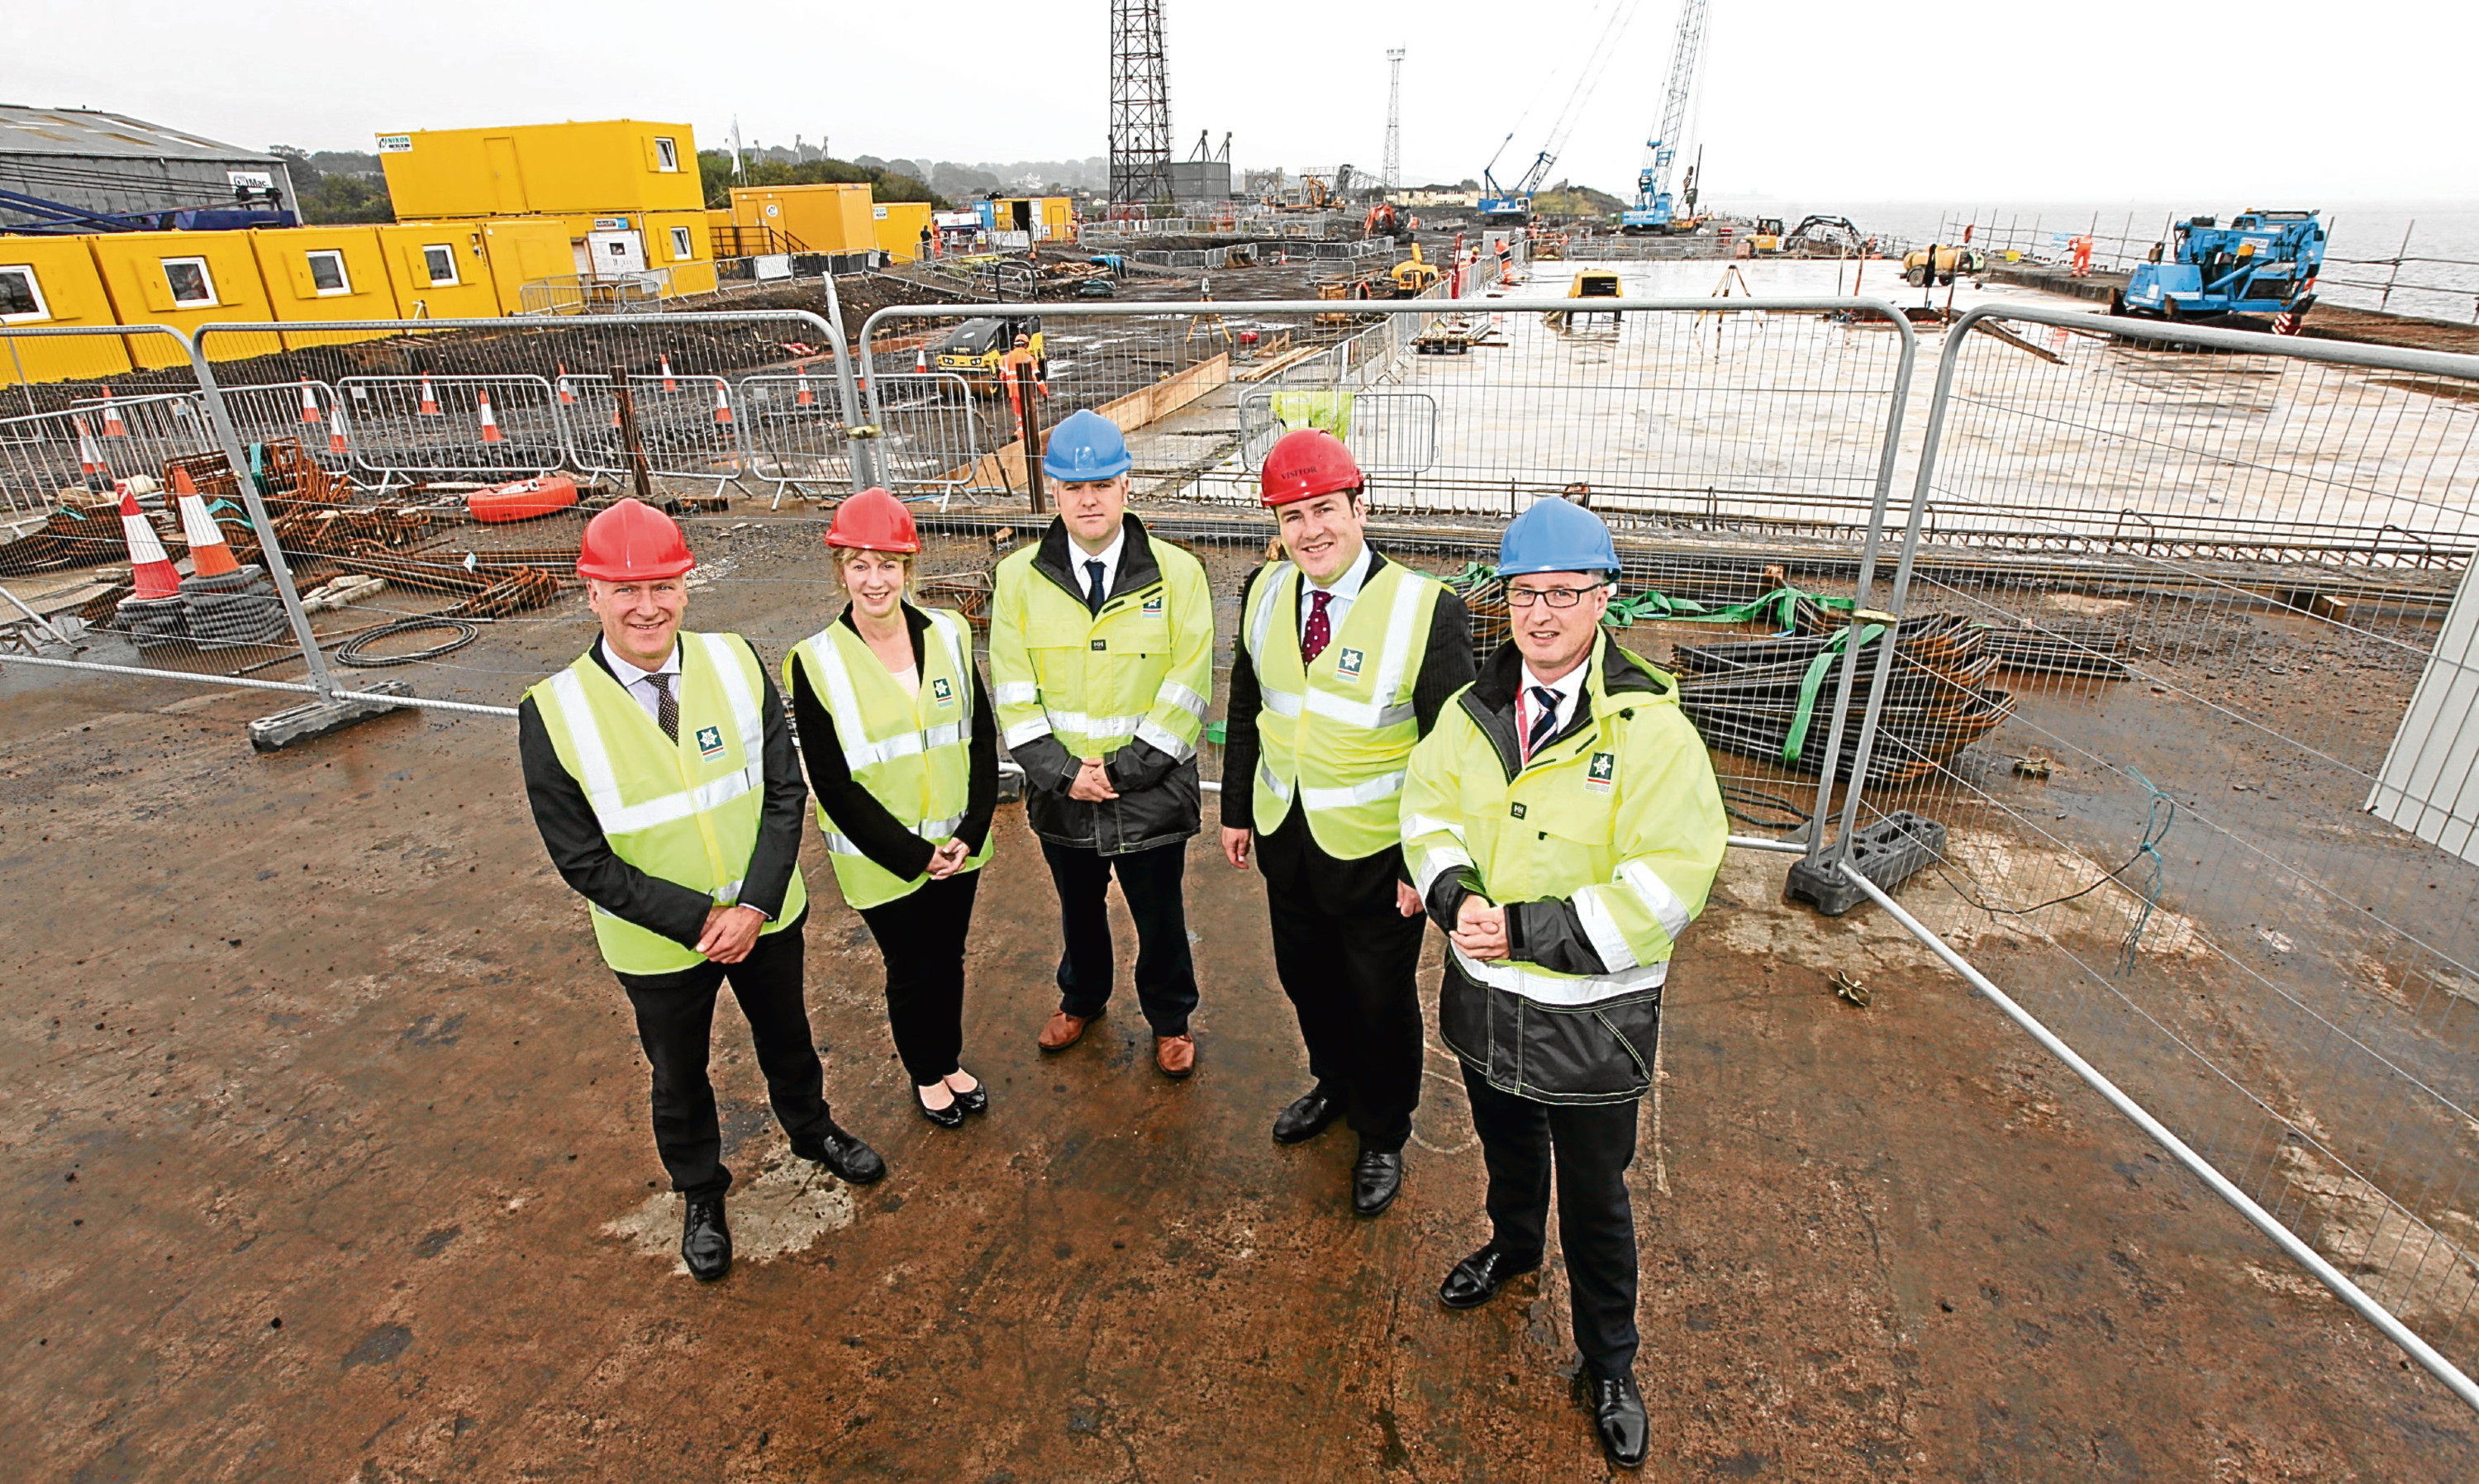 Joe Fitzpatrick MSP, Shona Robison MSP, Dundee Port Manager David Webster, Energy Minister Paul Wheelhouse and Forth Ports COO Stuart Wallace at the docks redevelopment site.